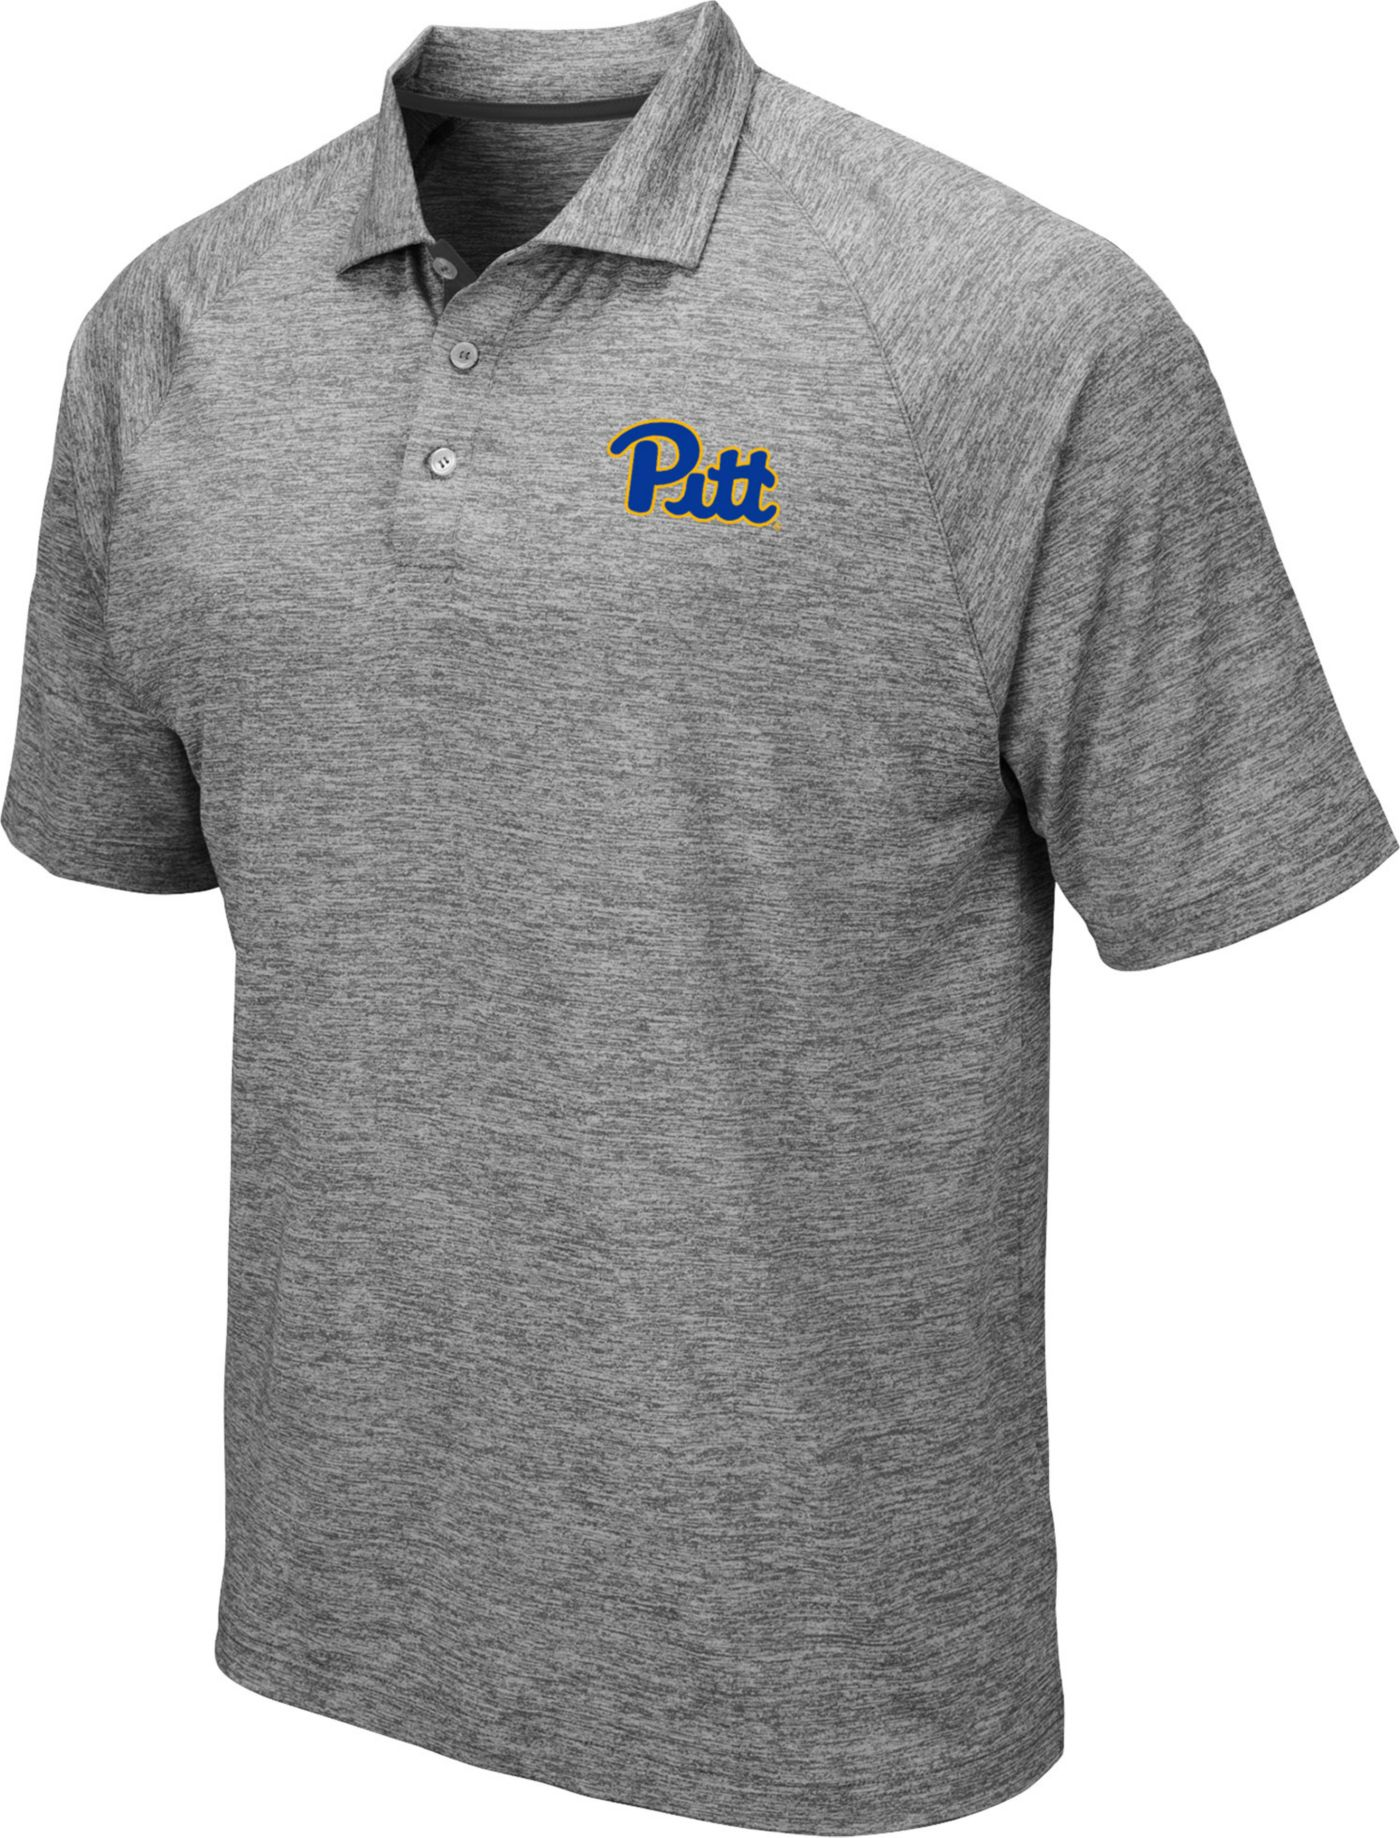 Colosseum Men's Pitt Panthers Grey Polo